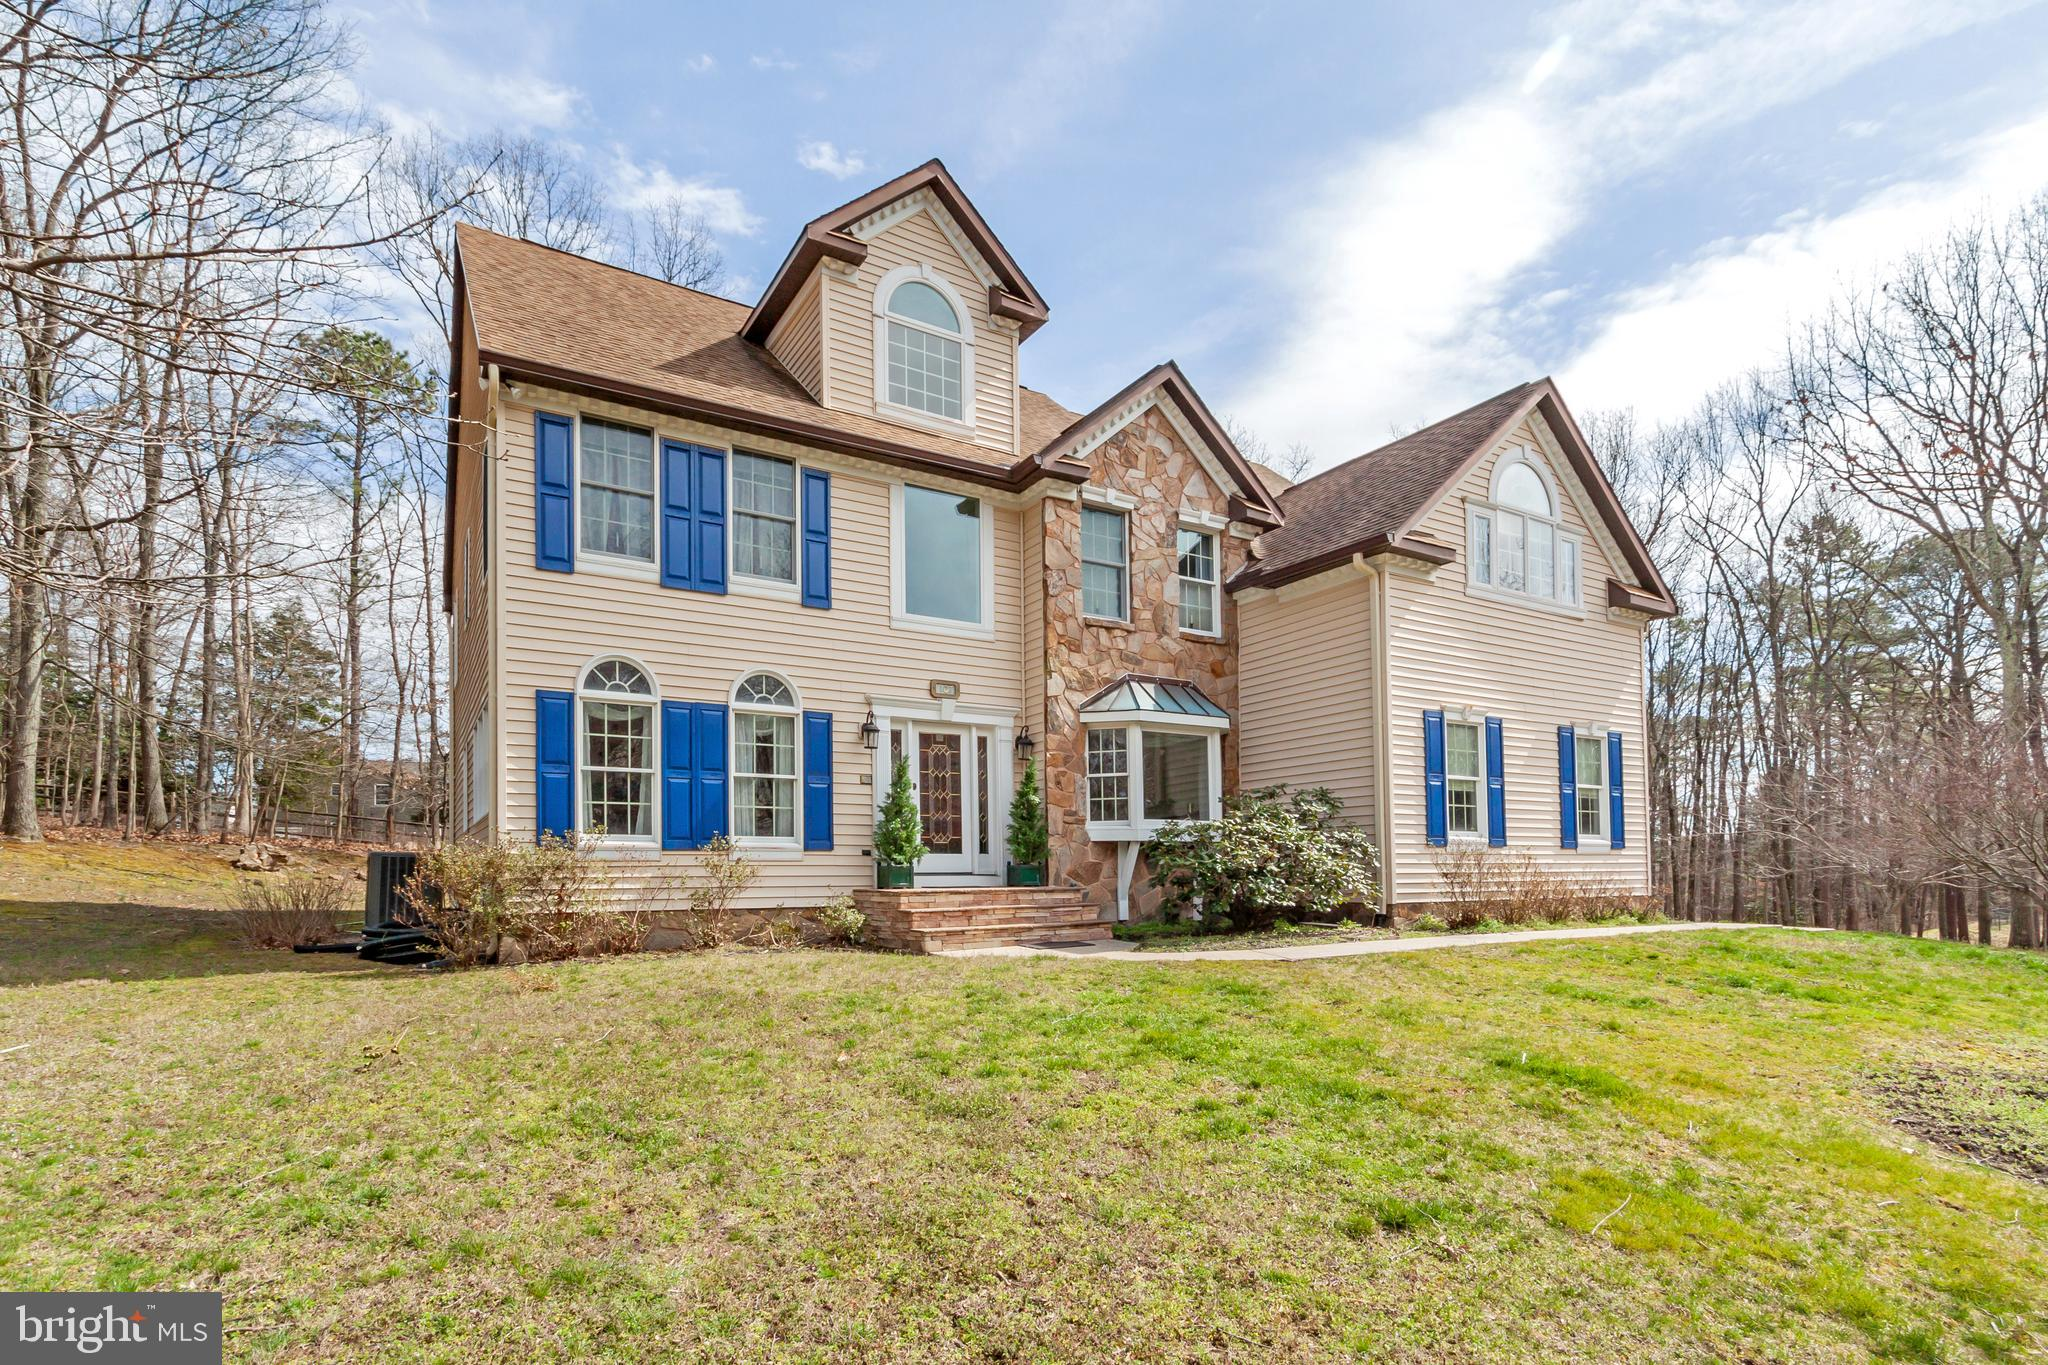 107 LAHINCH DRIVE, MILLERSVILLE, MD 21108